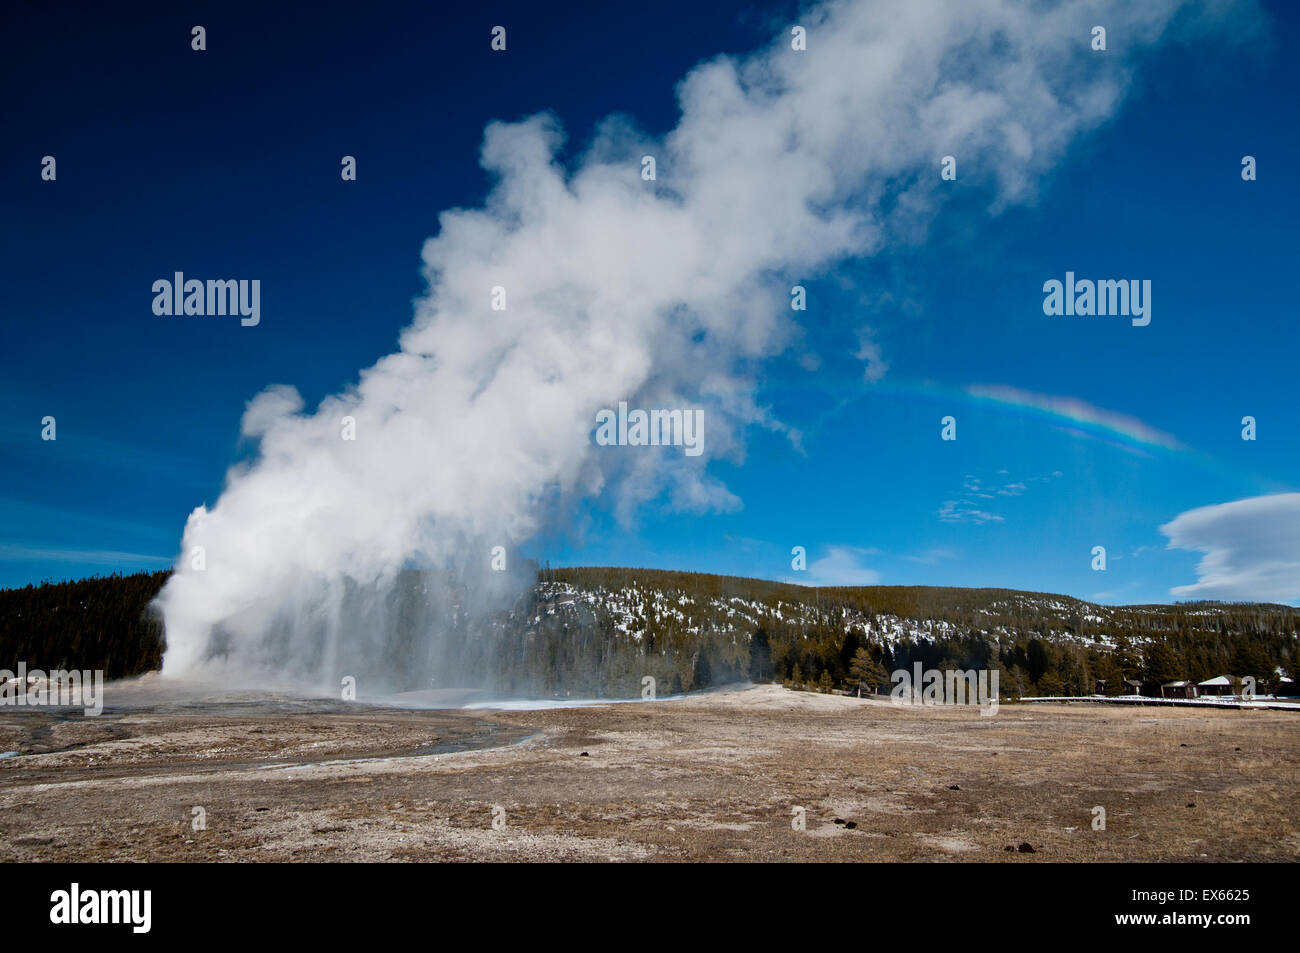 Old Faithful Geyser erupting in Yellowstone National Park, WY Stock Photo